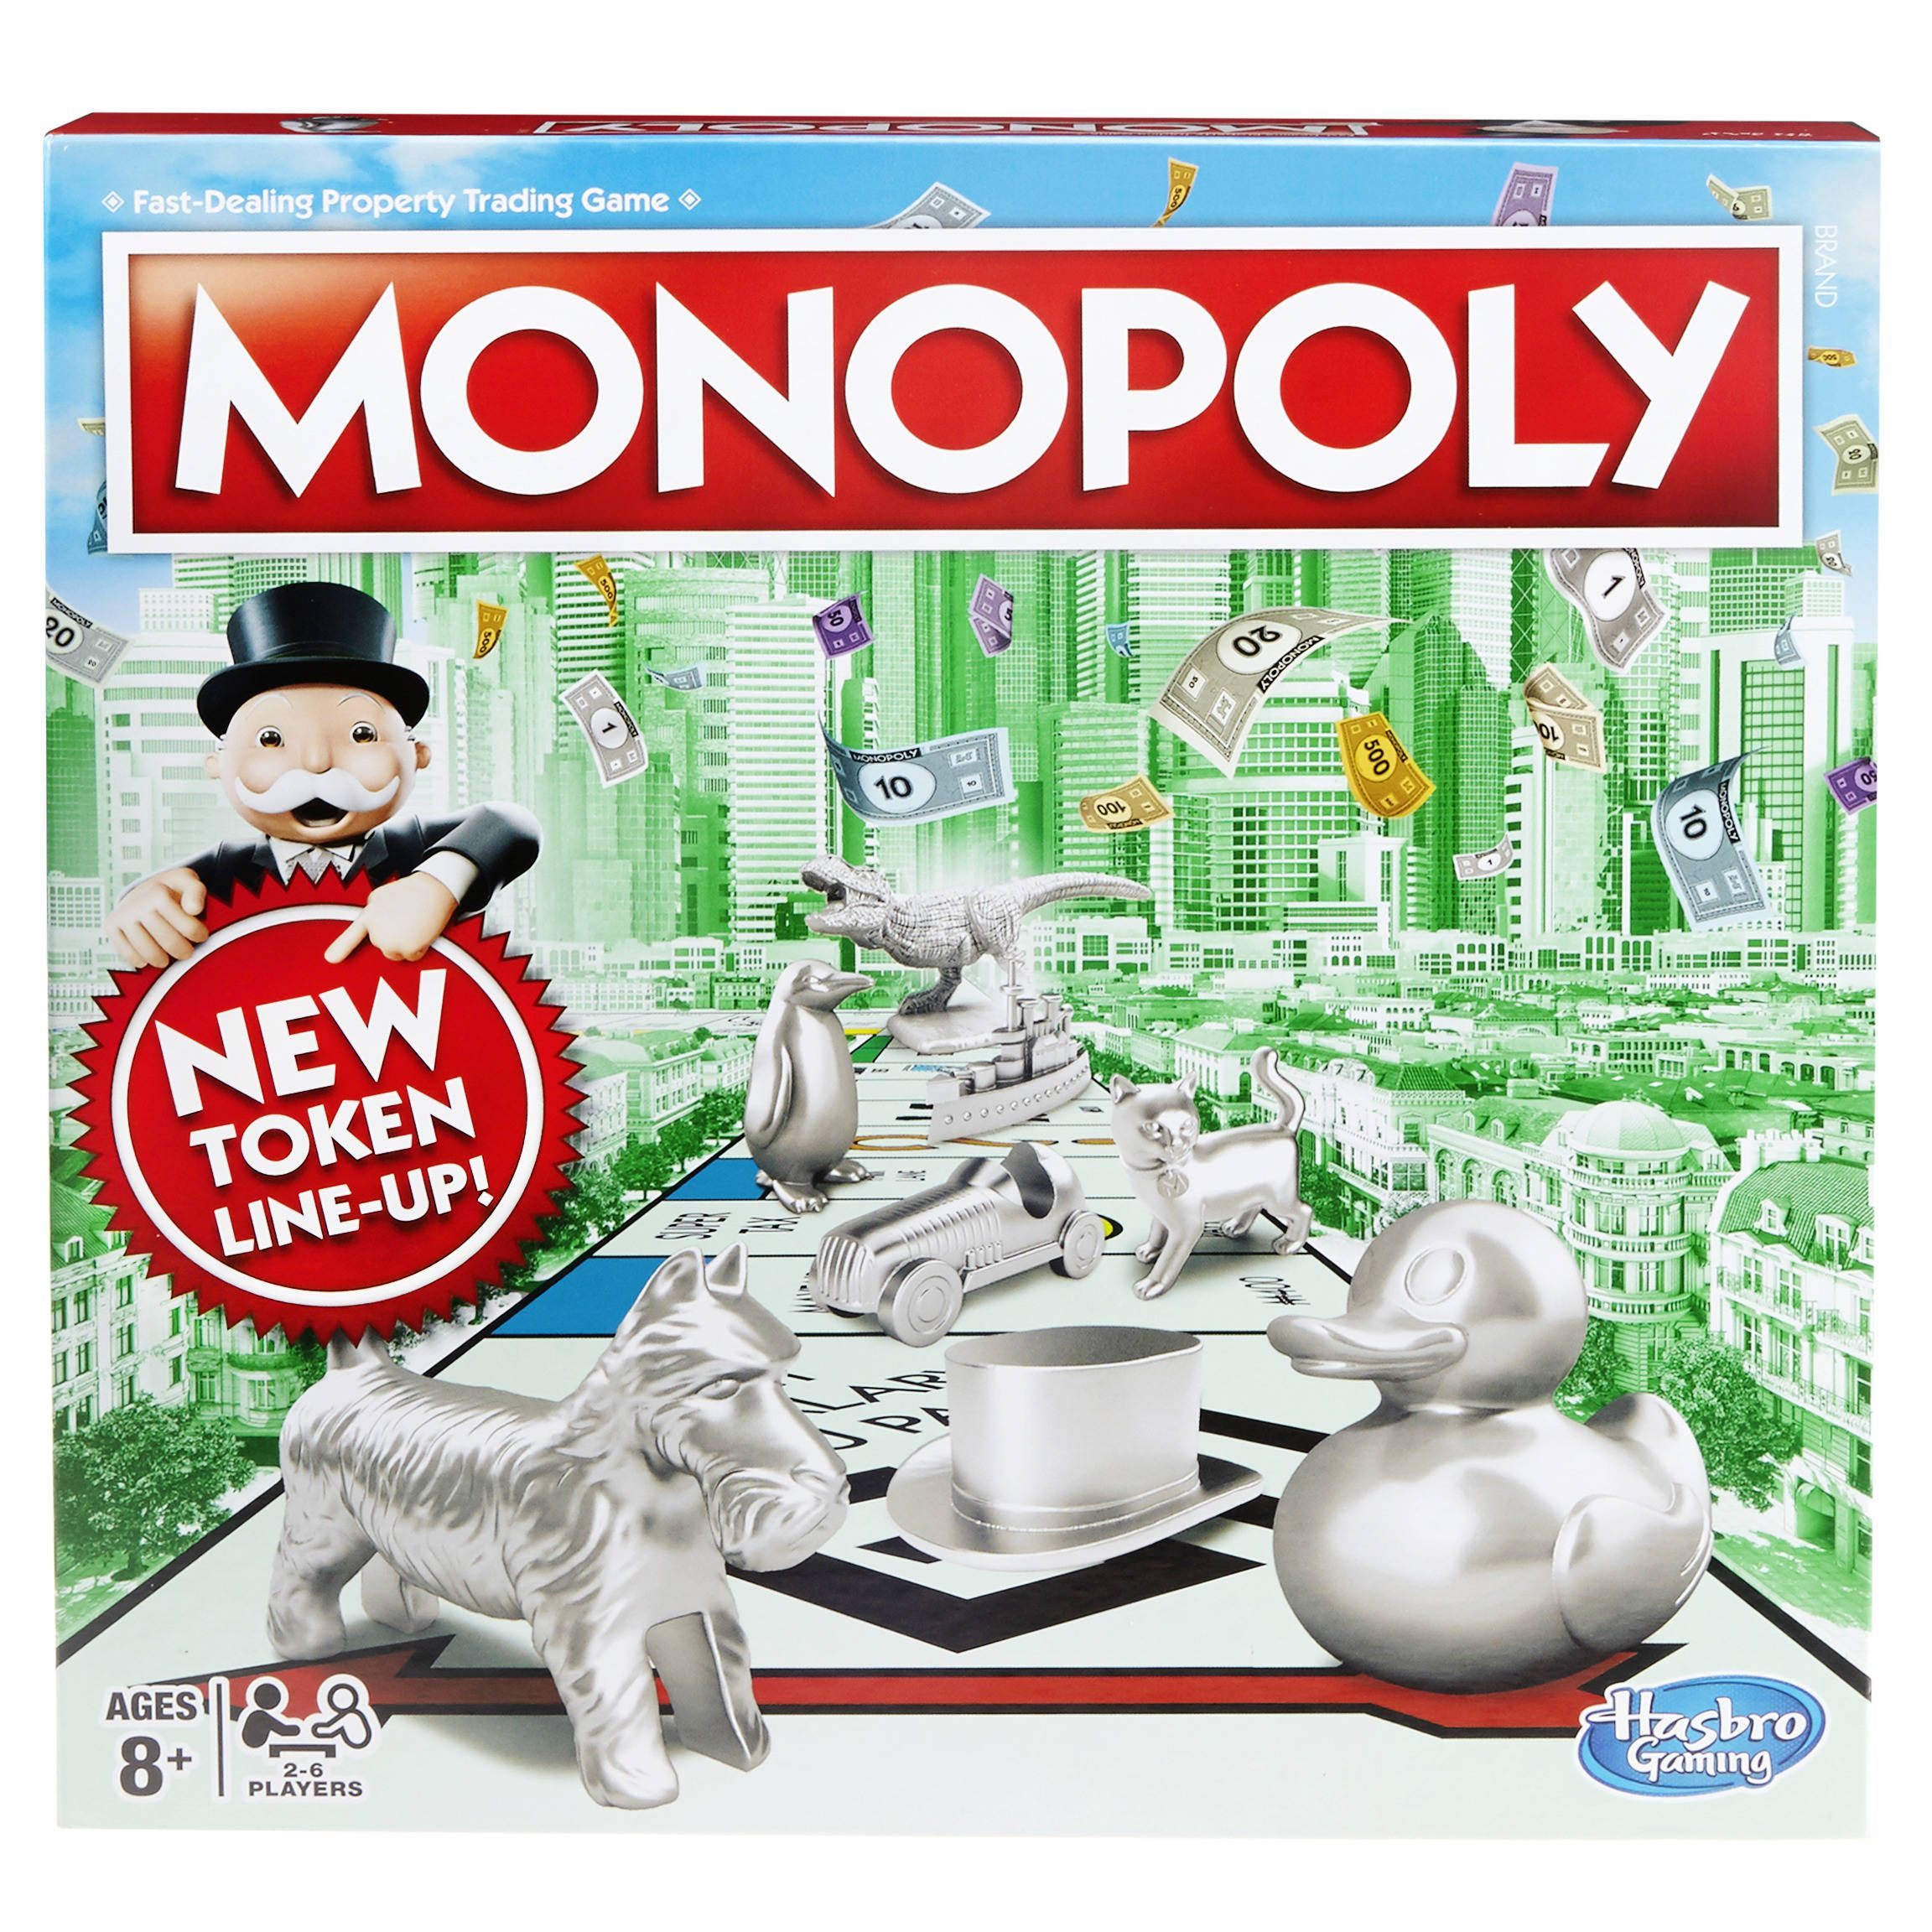 Monopoly Game Classic Smyths Toys Classic board